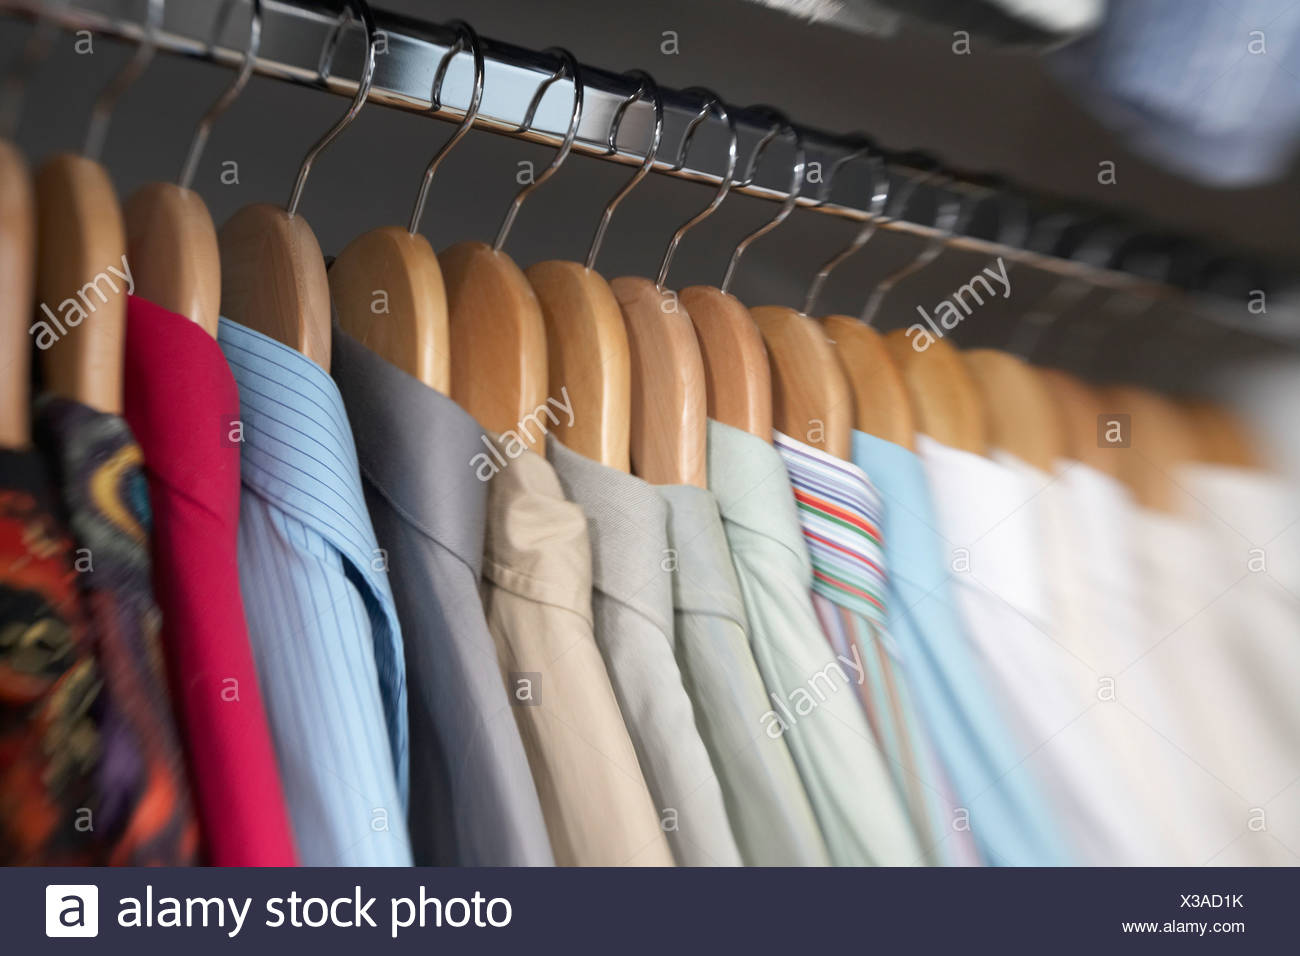 Close Up Of Menu0027s Dress Shirts Hanging In Closet   Stock Image